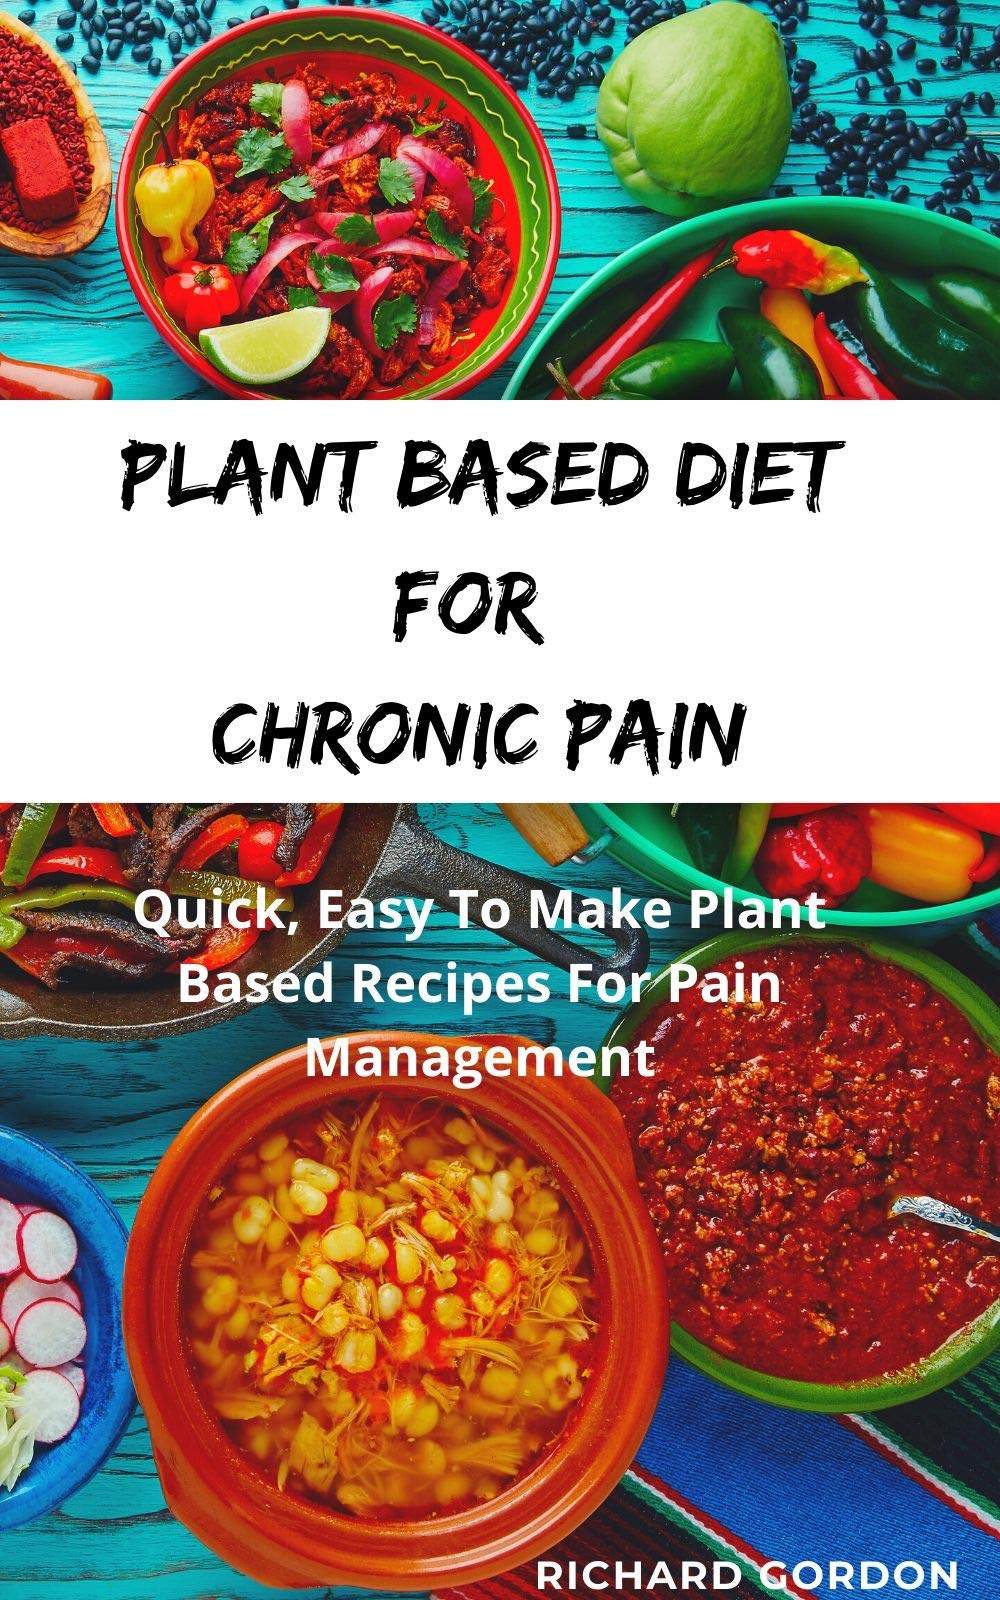 PLANT BASED DIET FOR CHRONIC PAIN: Quick, Easy To Make Plant Based Recipes For Pain Management